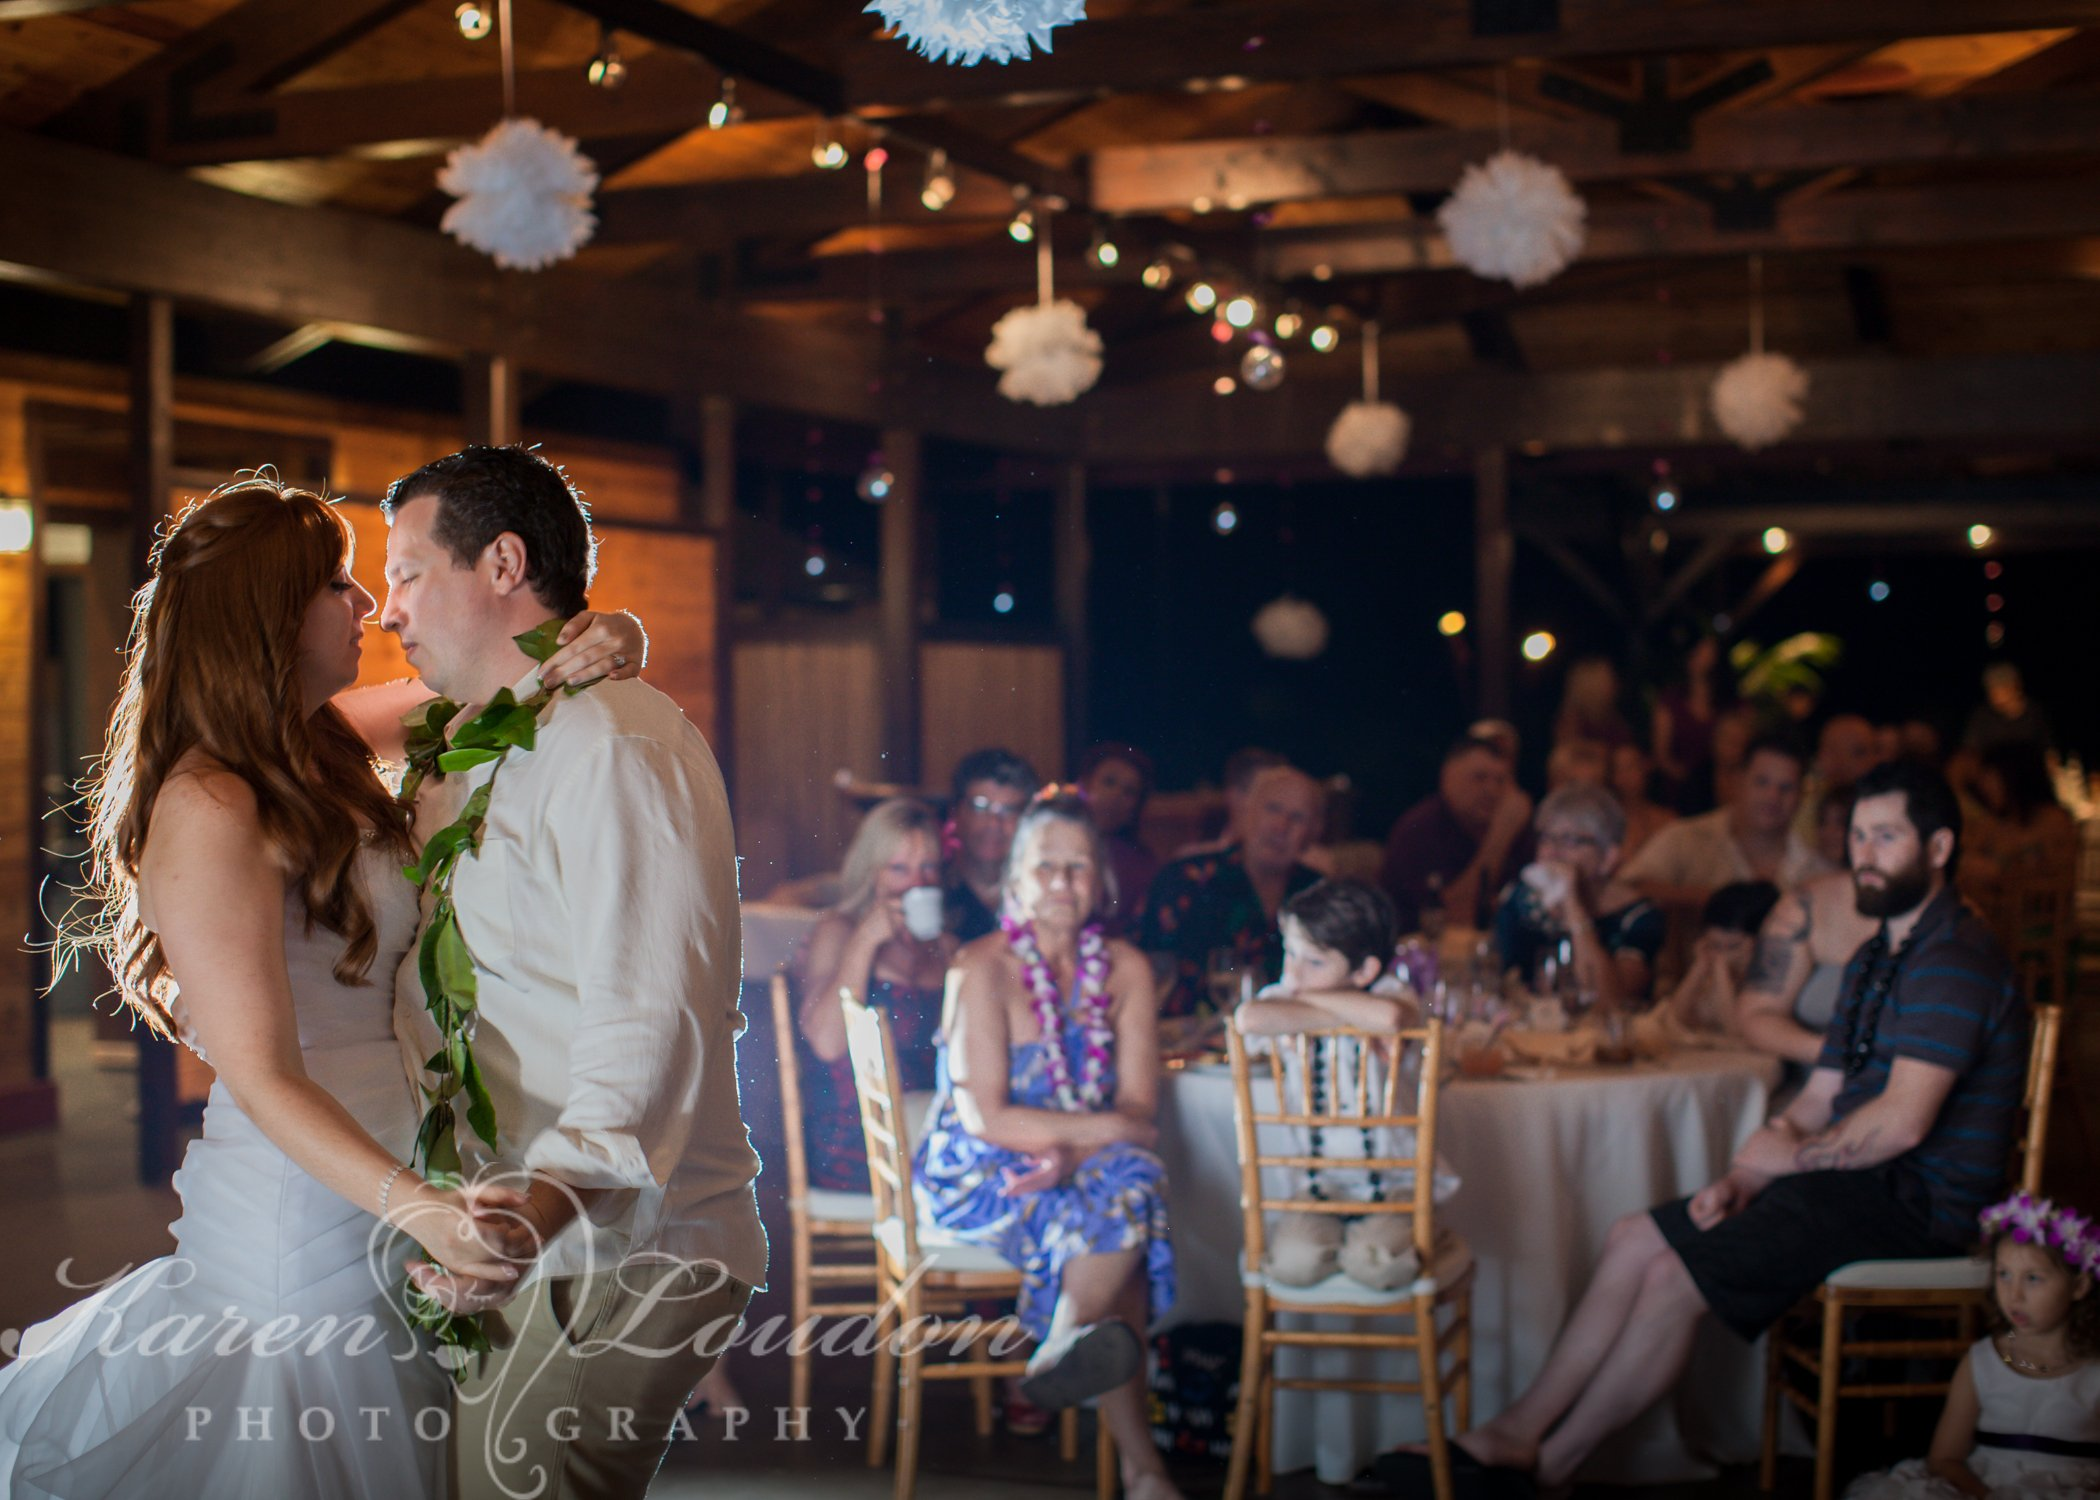 Holualoa first dance